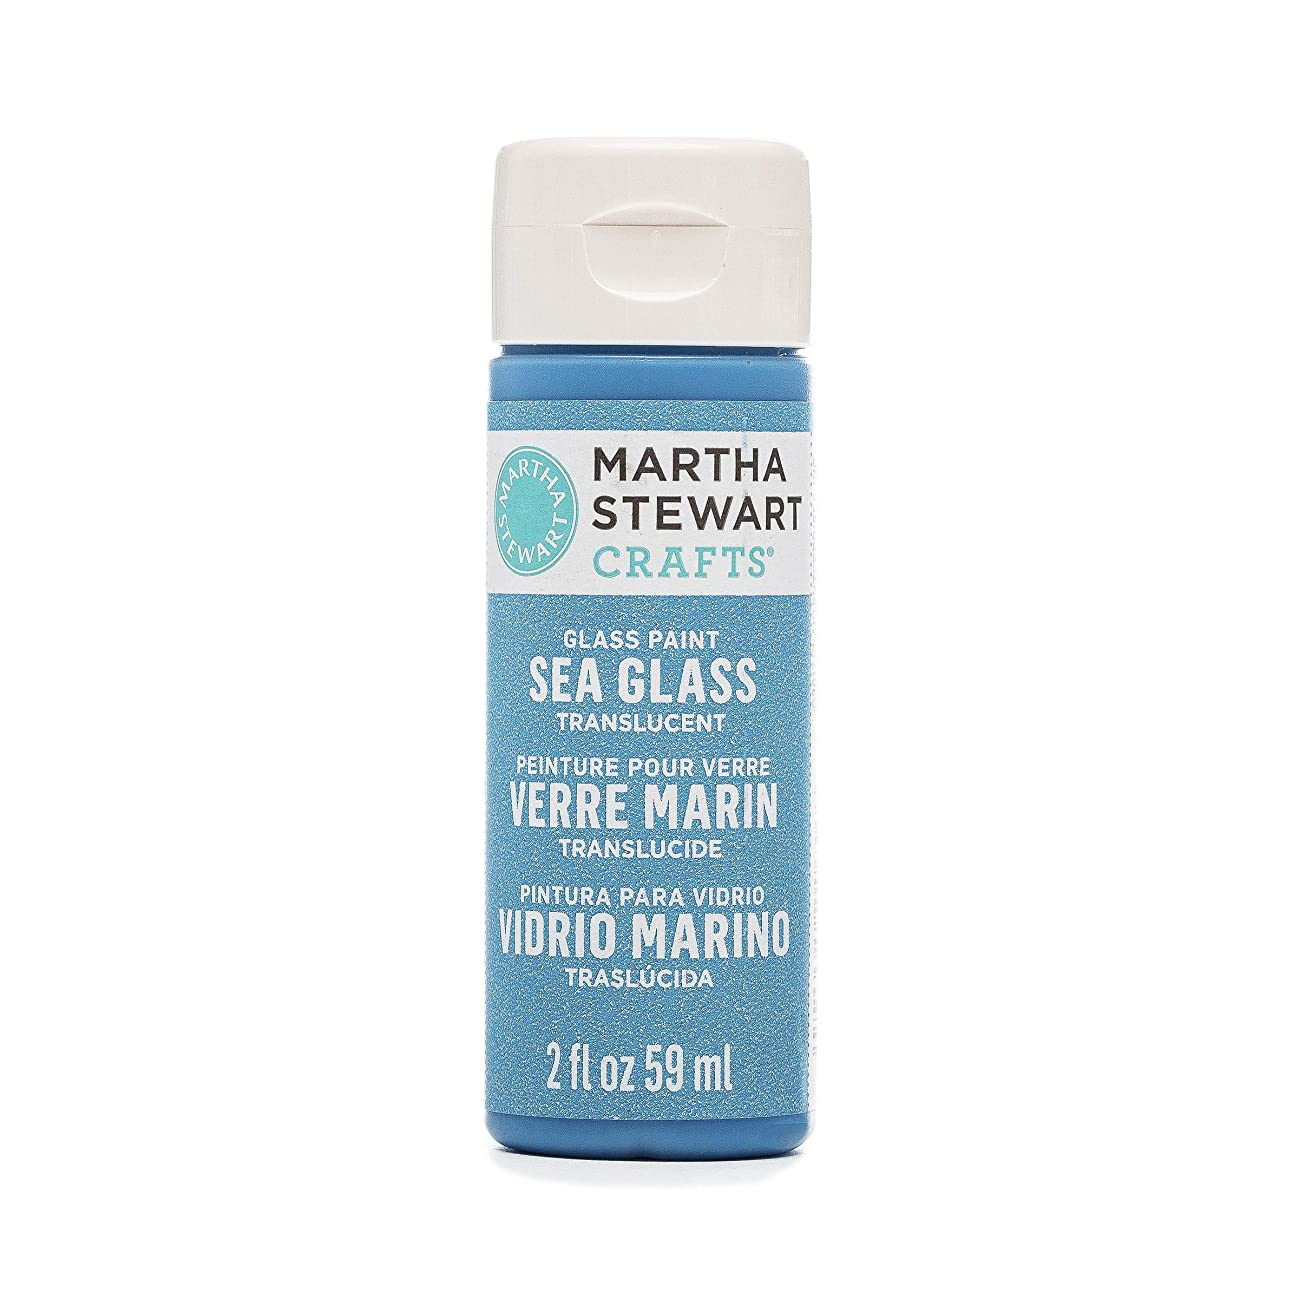 Martha Stewart Crafts Translucent Sea Glass Paint, in Assorted Colors (2 ounces), Blue Calico